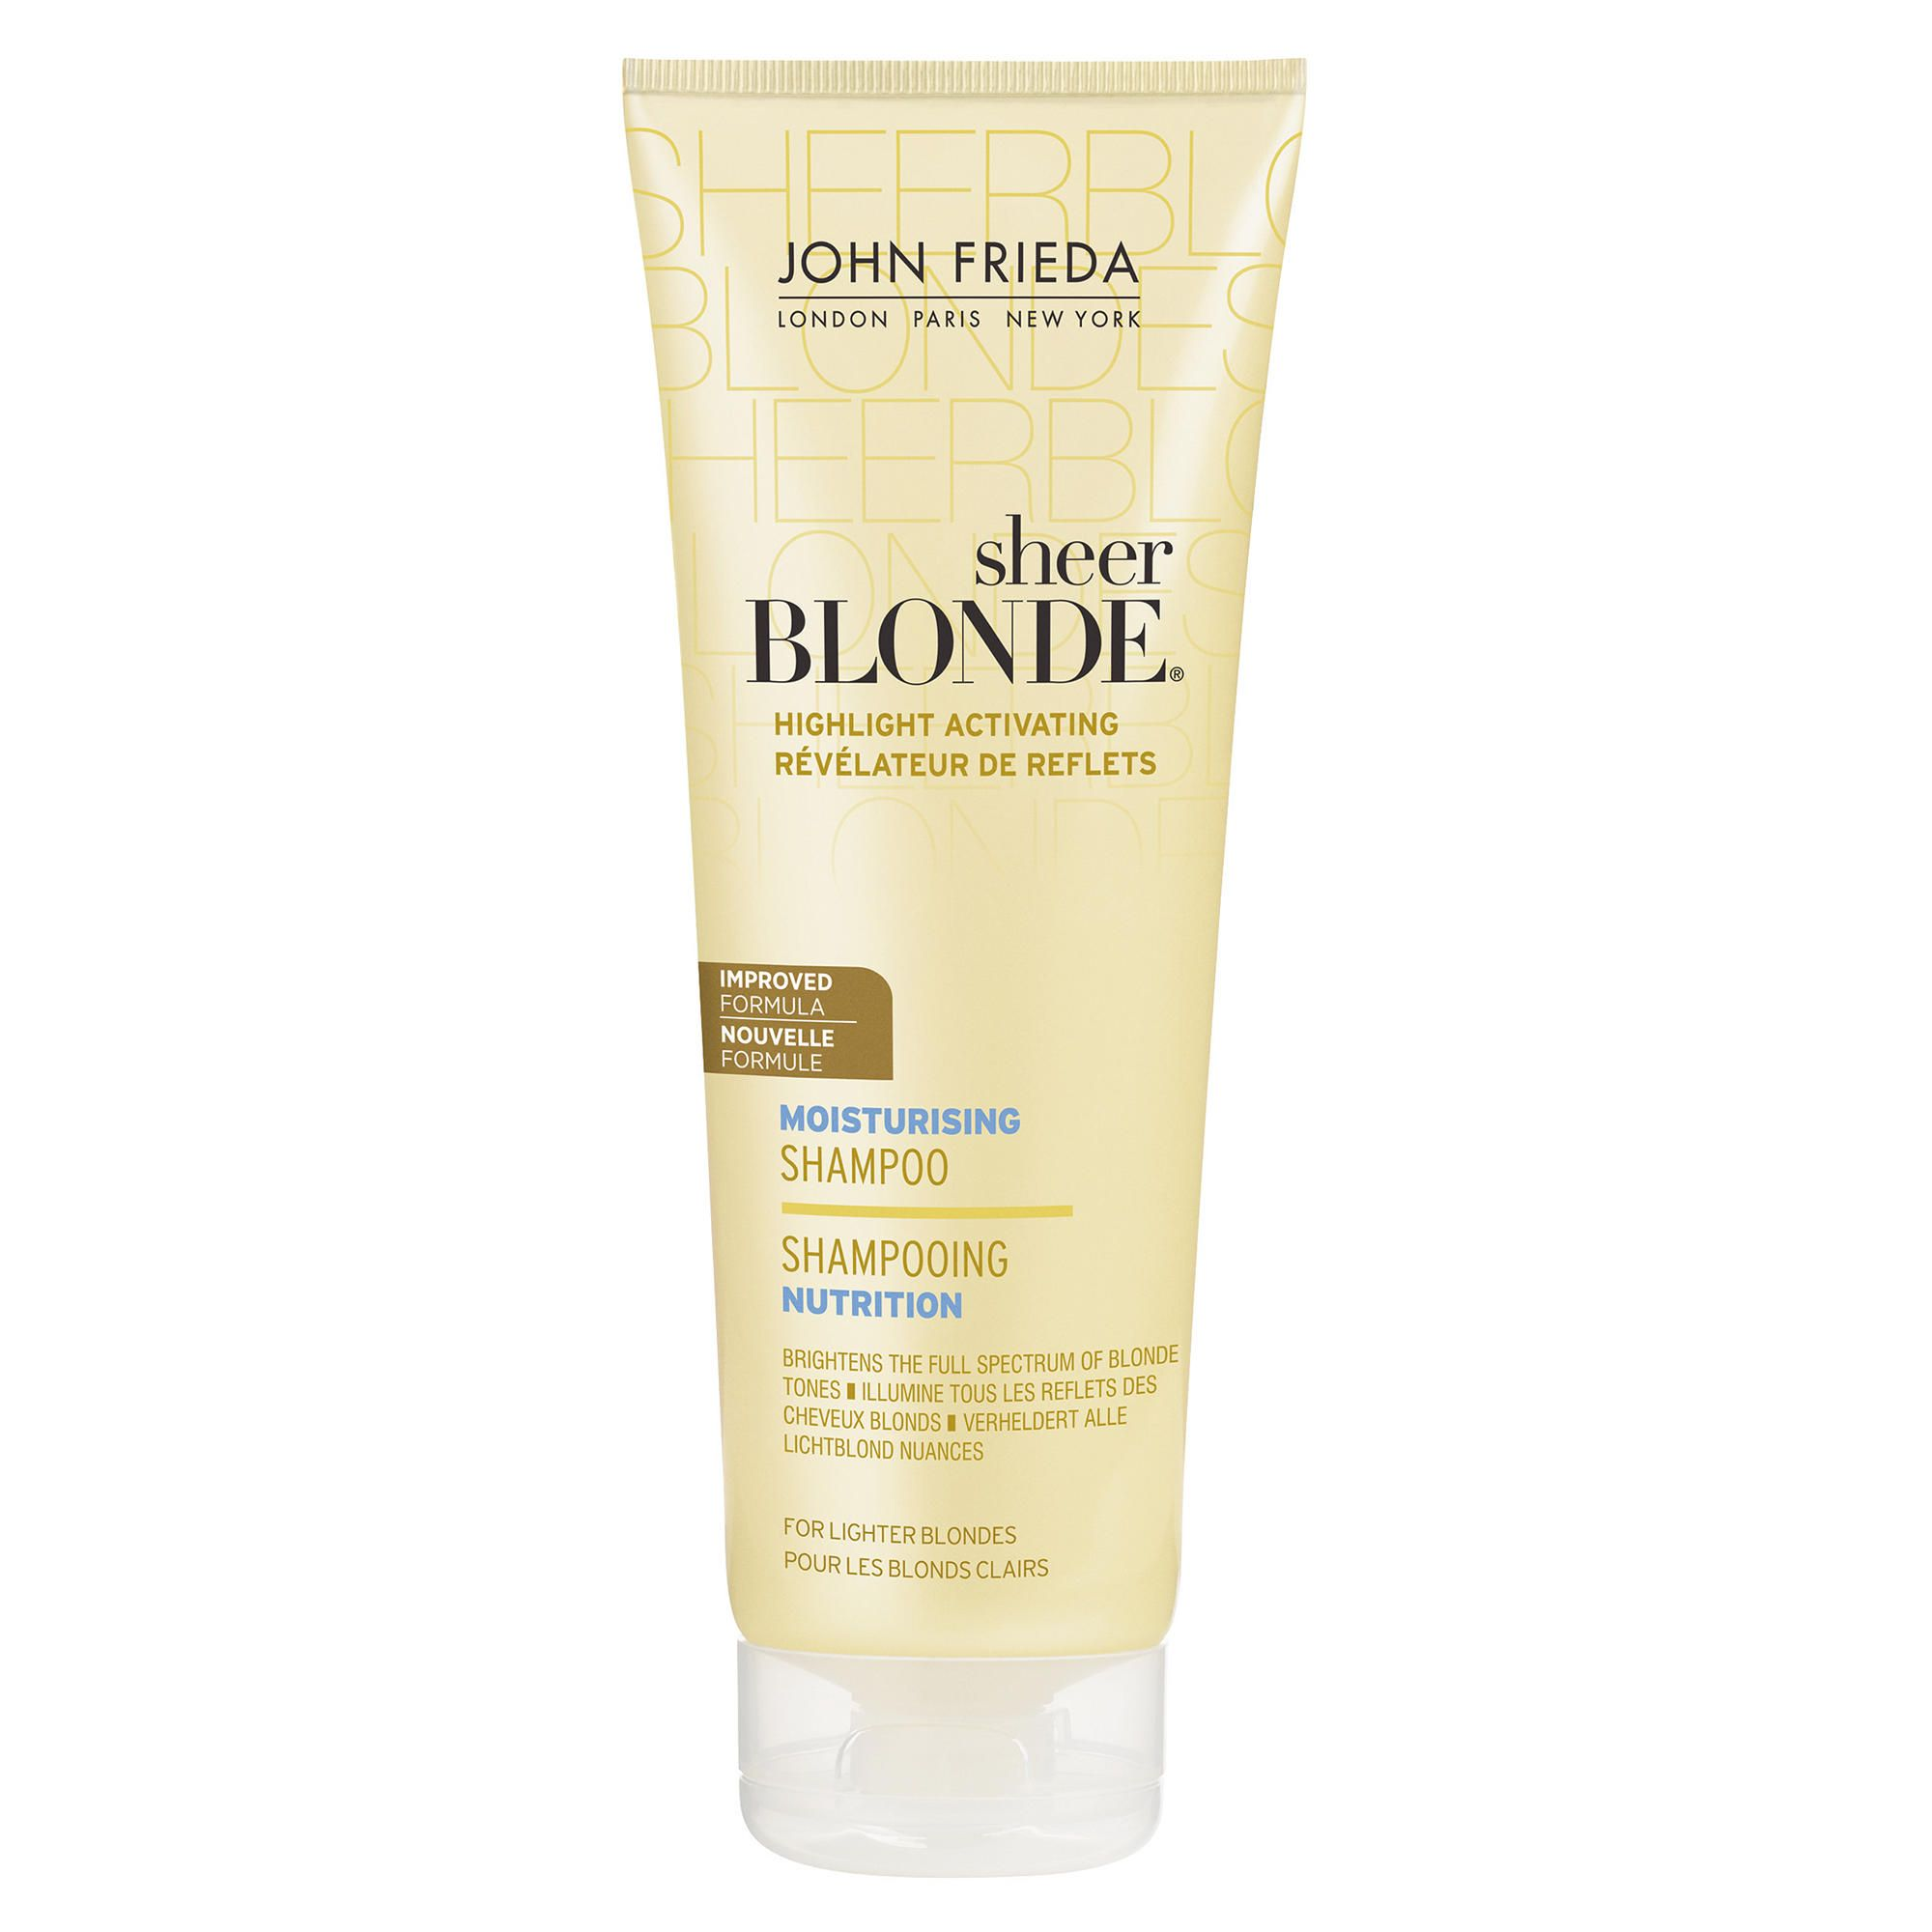 John Frieda Sheer Blonde Moisturising Shampoo for Lighter Blonde 250ml